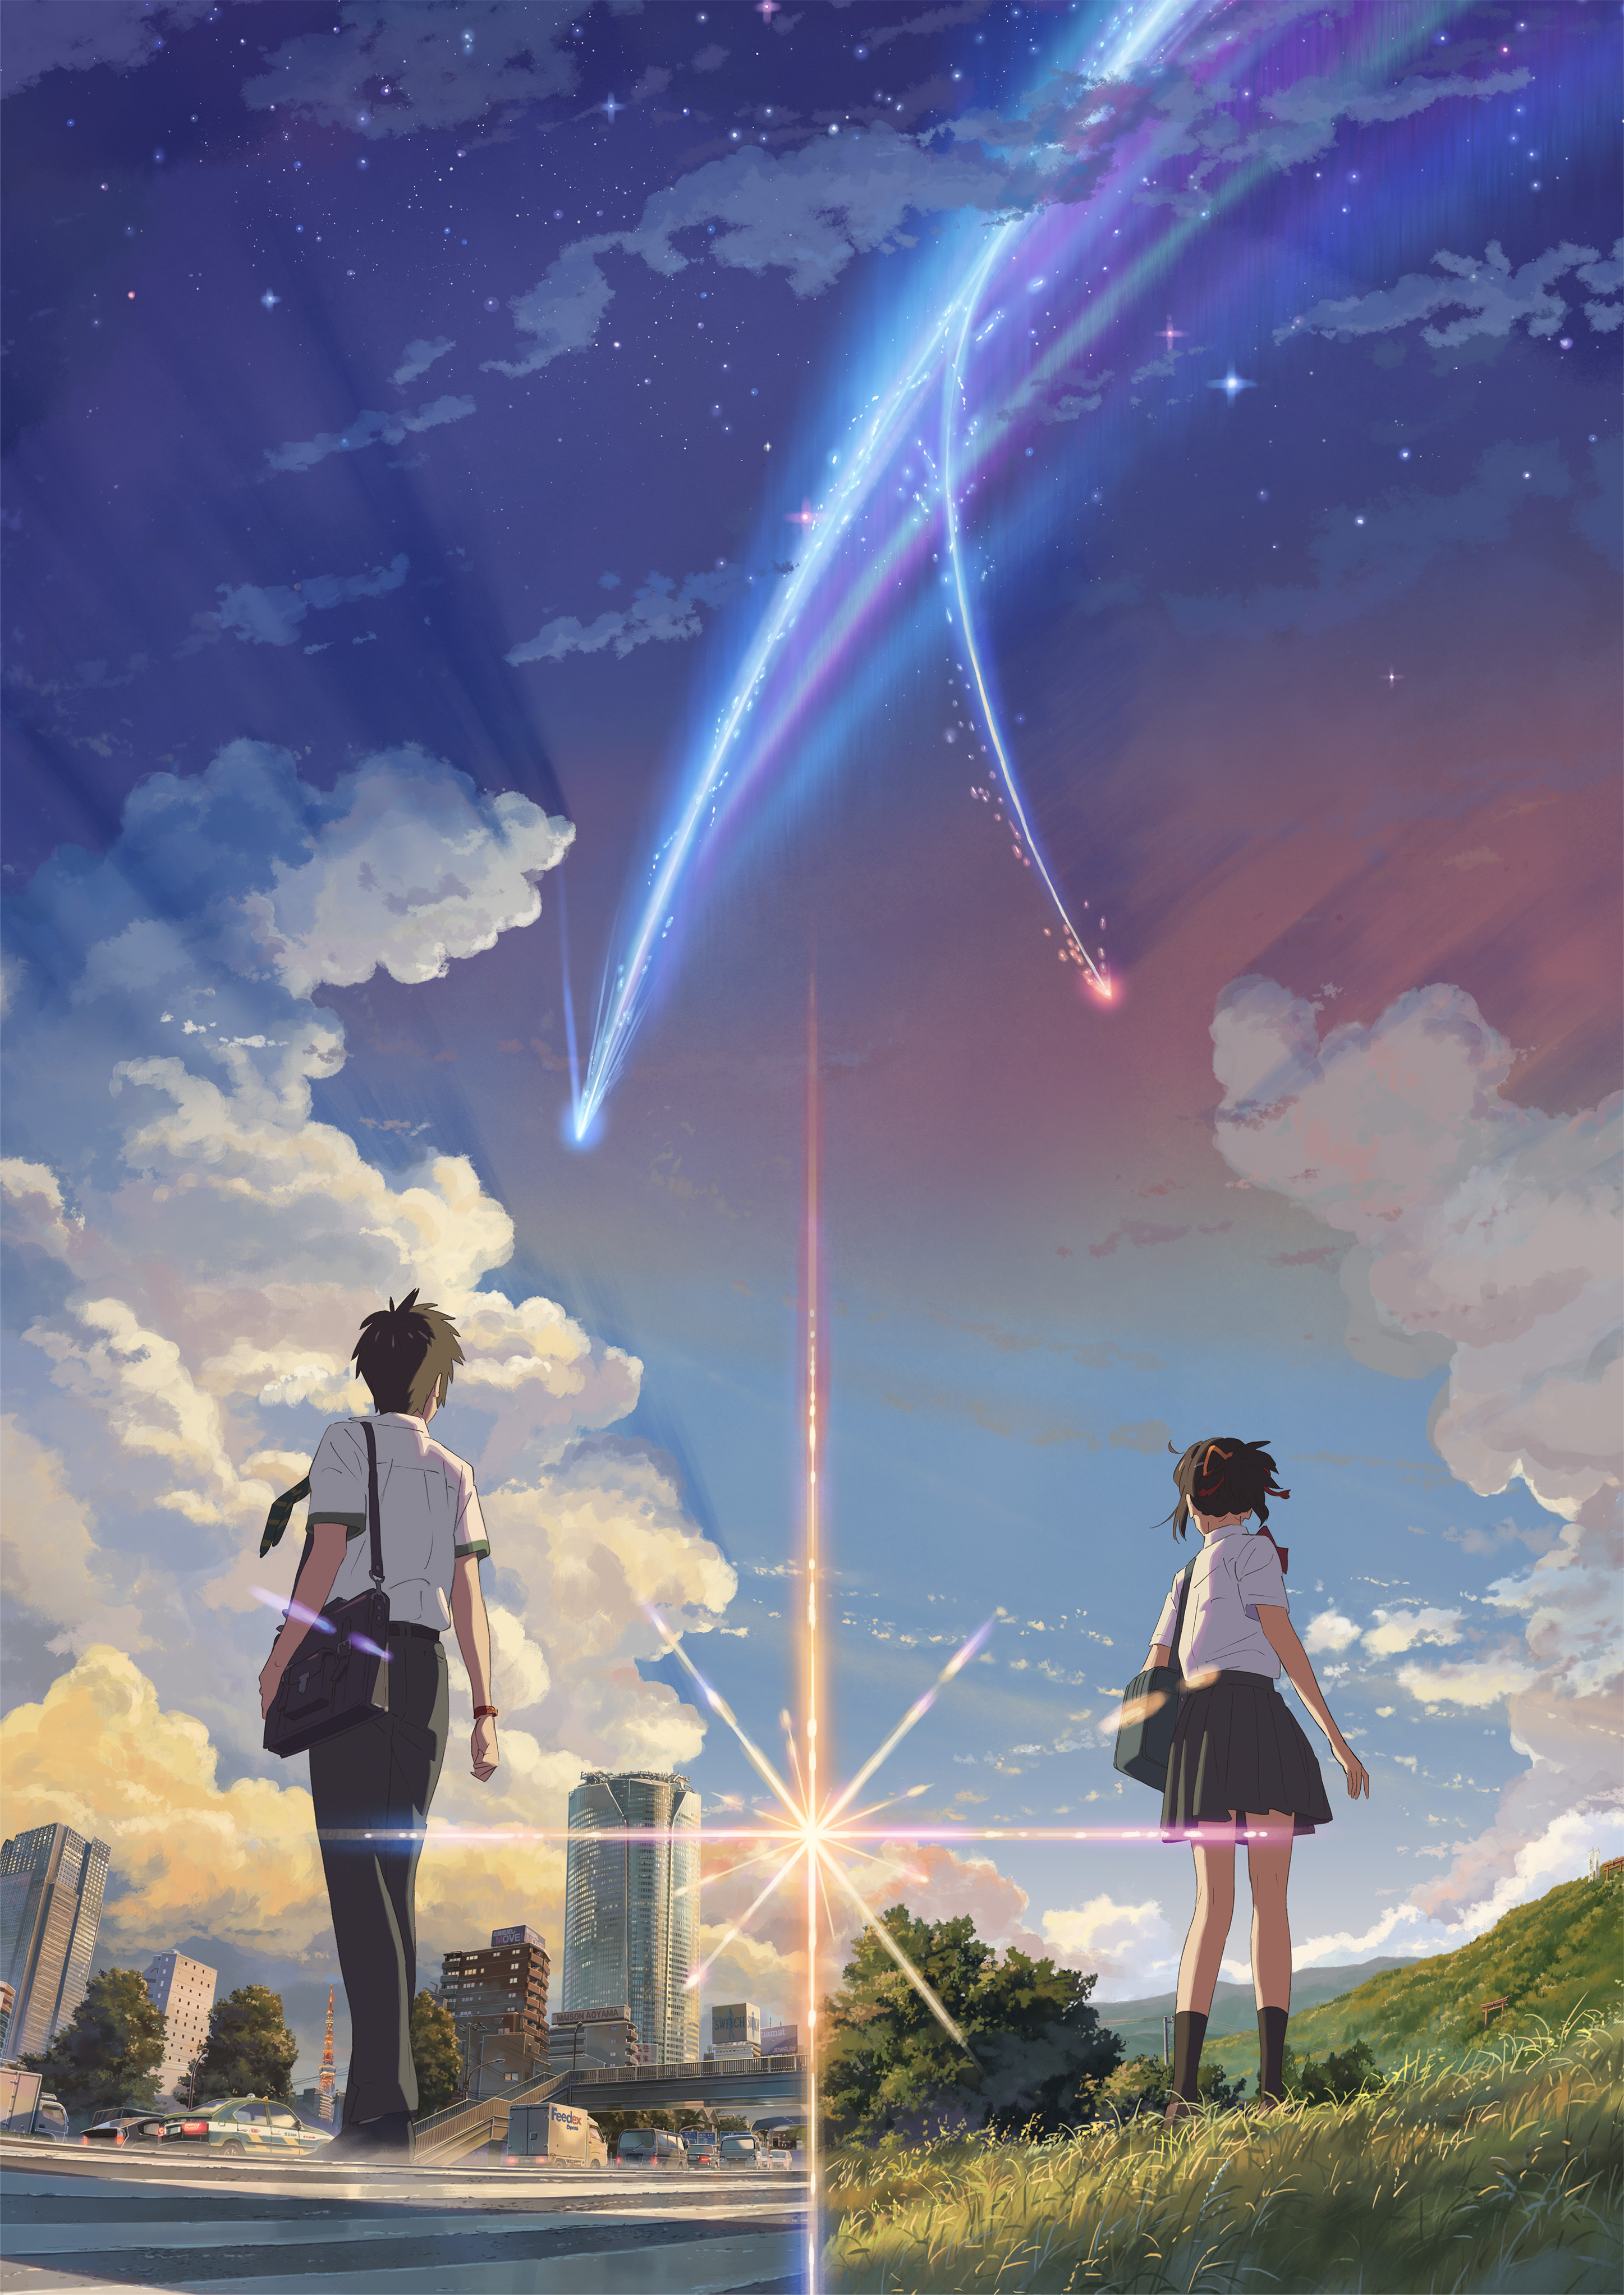 Your Name Wallpaper Iphone Xr : wallpaper, iphone, IPhone, Wallpapers, Wallpaper